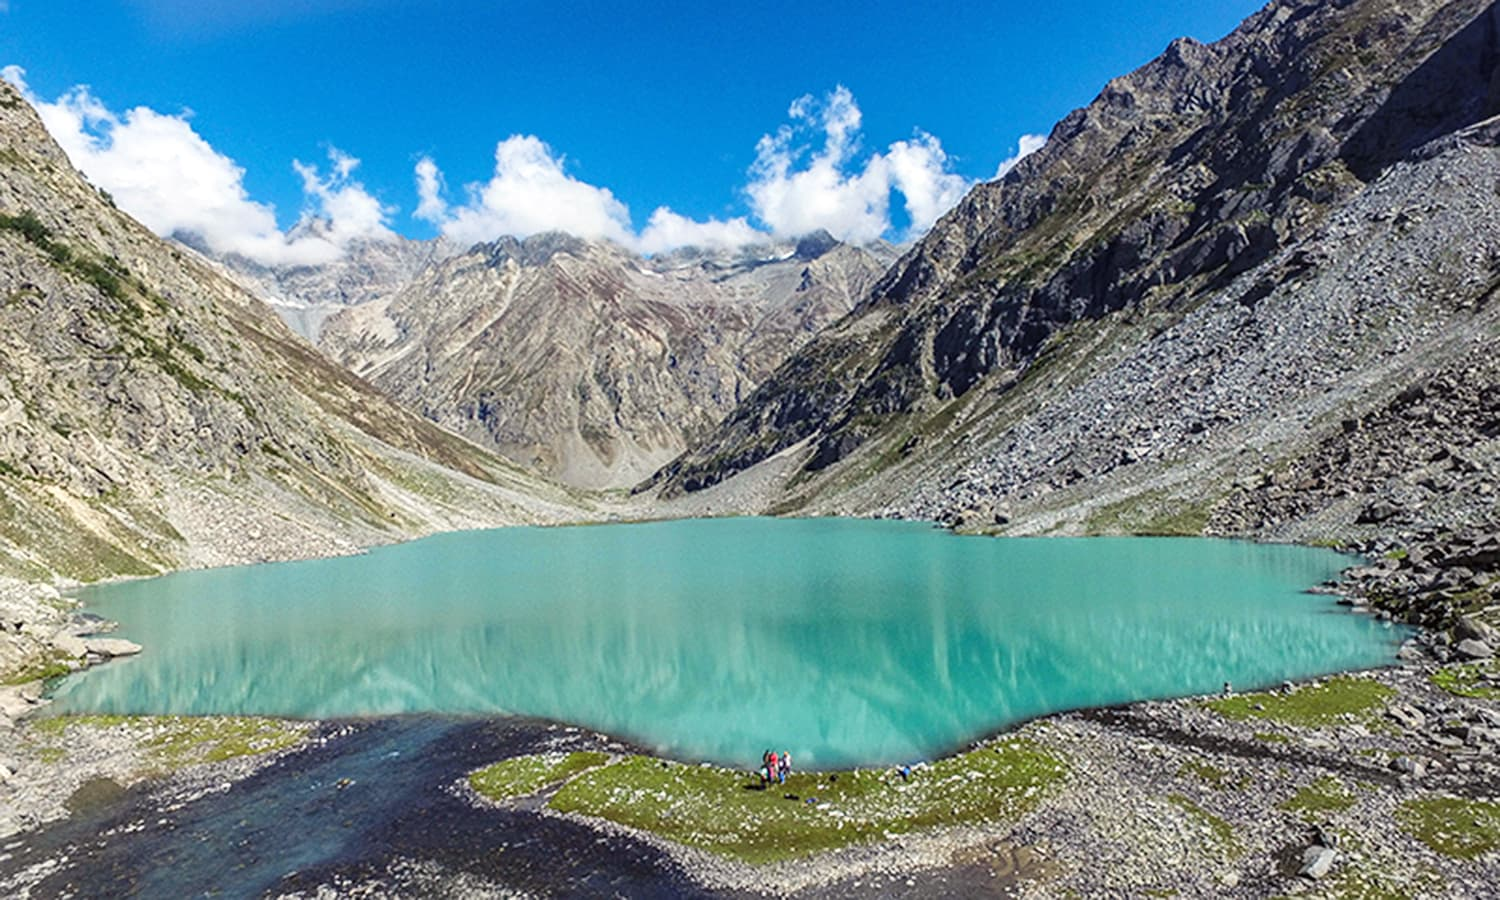 A view of the Kooh Lake in Anakar, Kalam Valley.─Photo by author